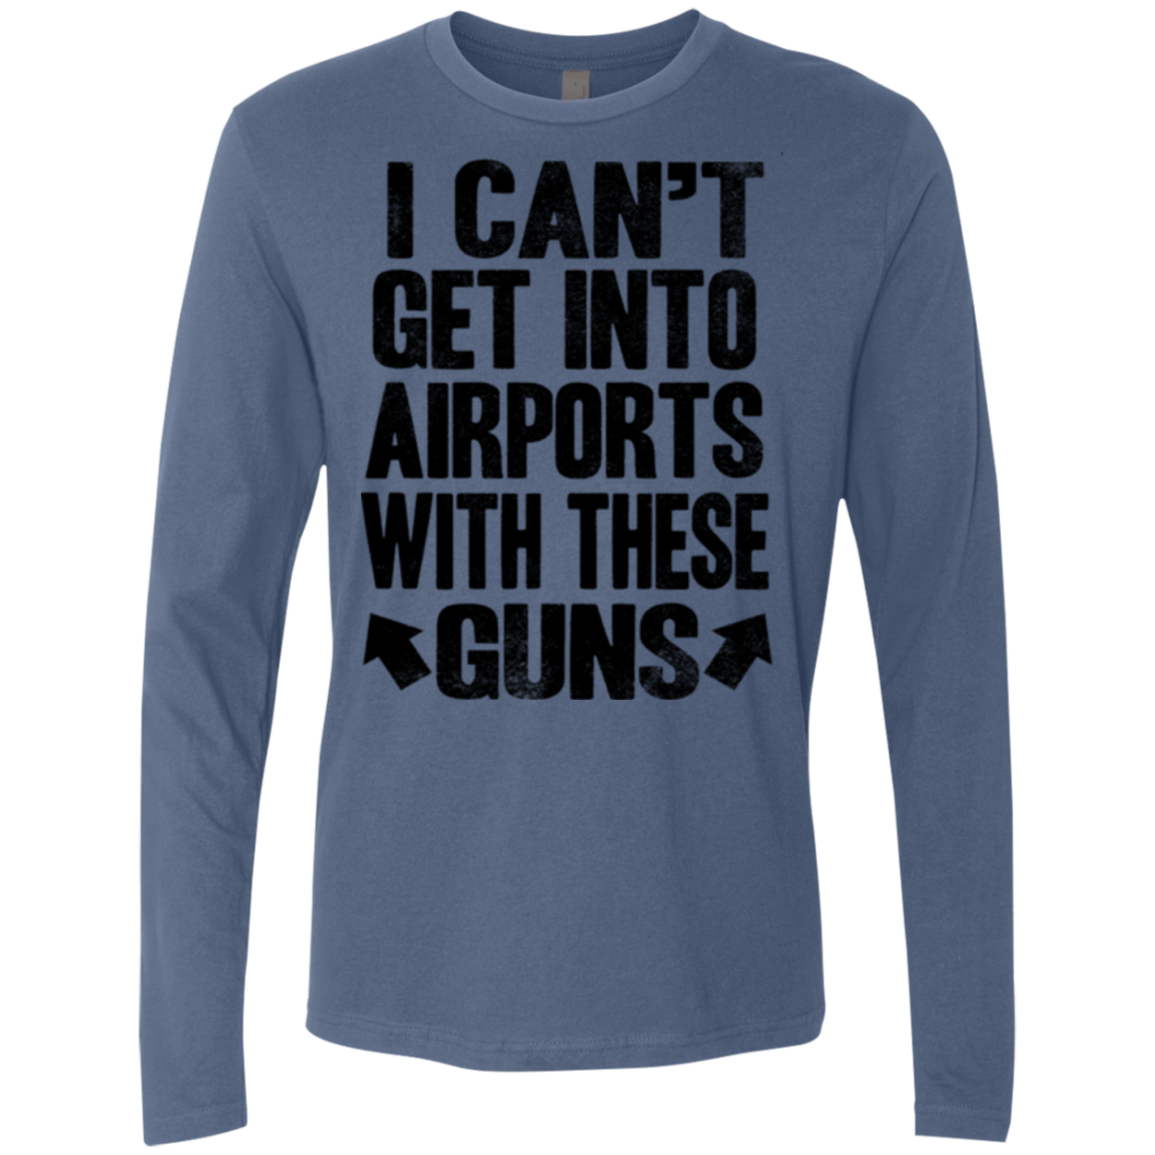 Can't Get into Airport with these Guns Men's Long Sleeve Tee - Trendy Tees